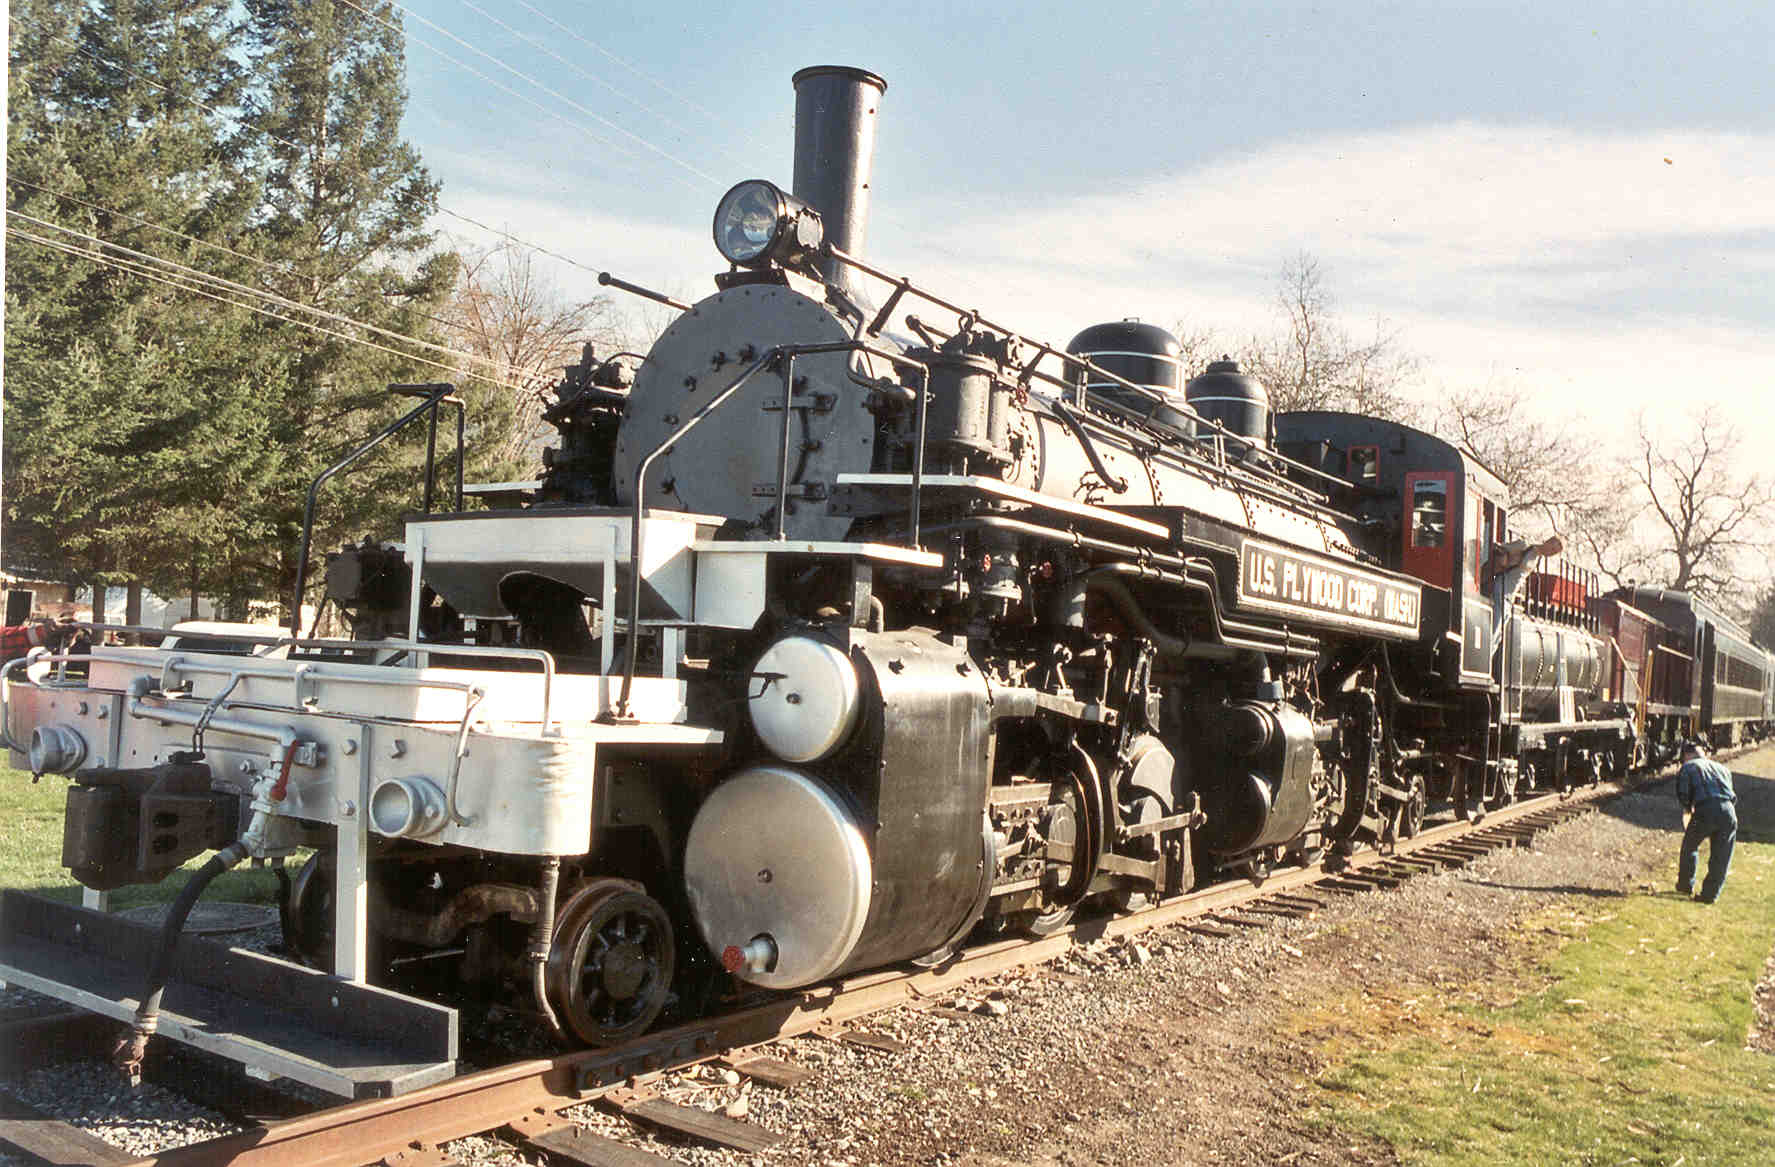 Locomotive_11_move_3.jpg